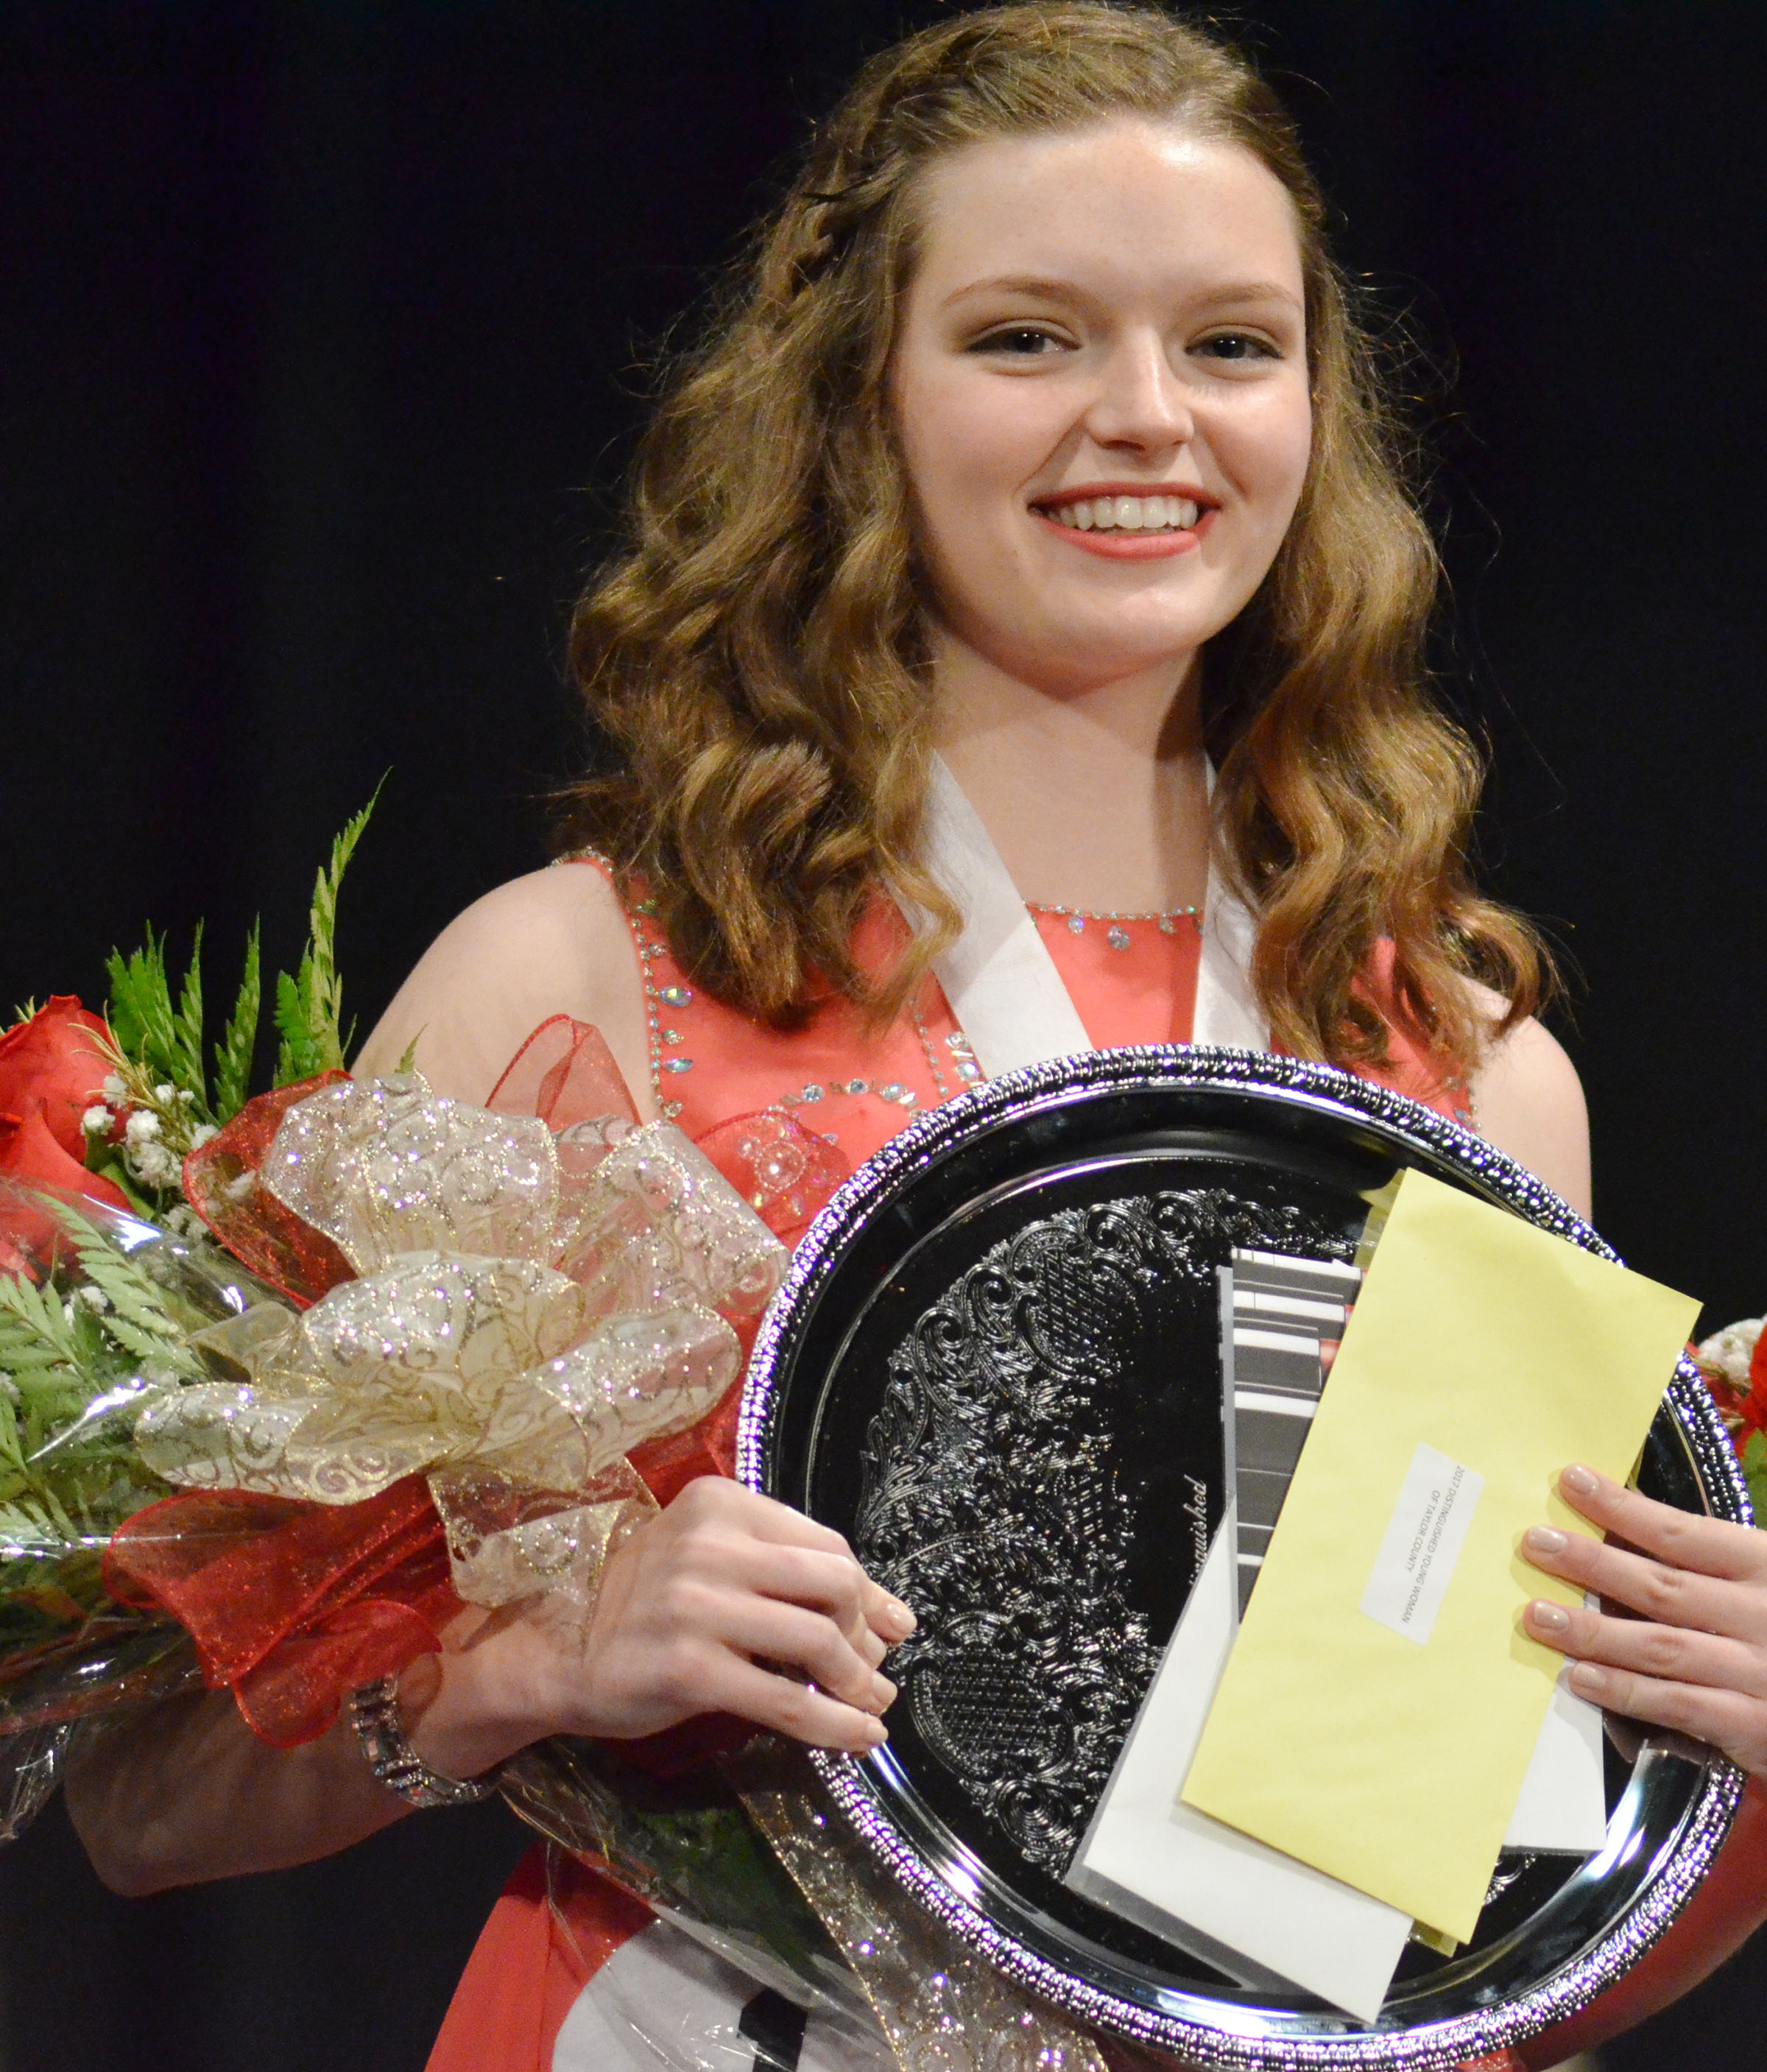 In addition to being named the Taylor County Distinguished Young Woman last June, CHS senior Blair Lamb won the Be Your Best Self Award, the overall scholastic and self-expression awards and preliminary awards in fitness, talent and interview. Lamb will compete in the state DYW program in Lexington on Jan. 13 and 14.